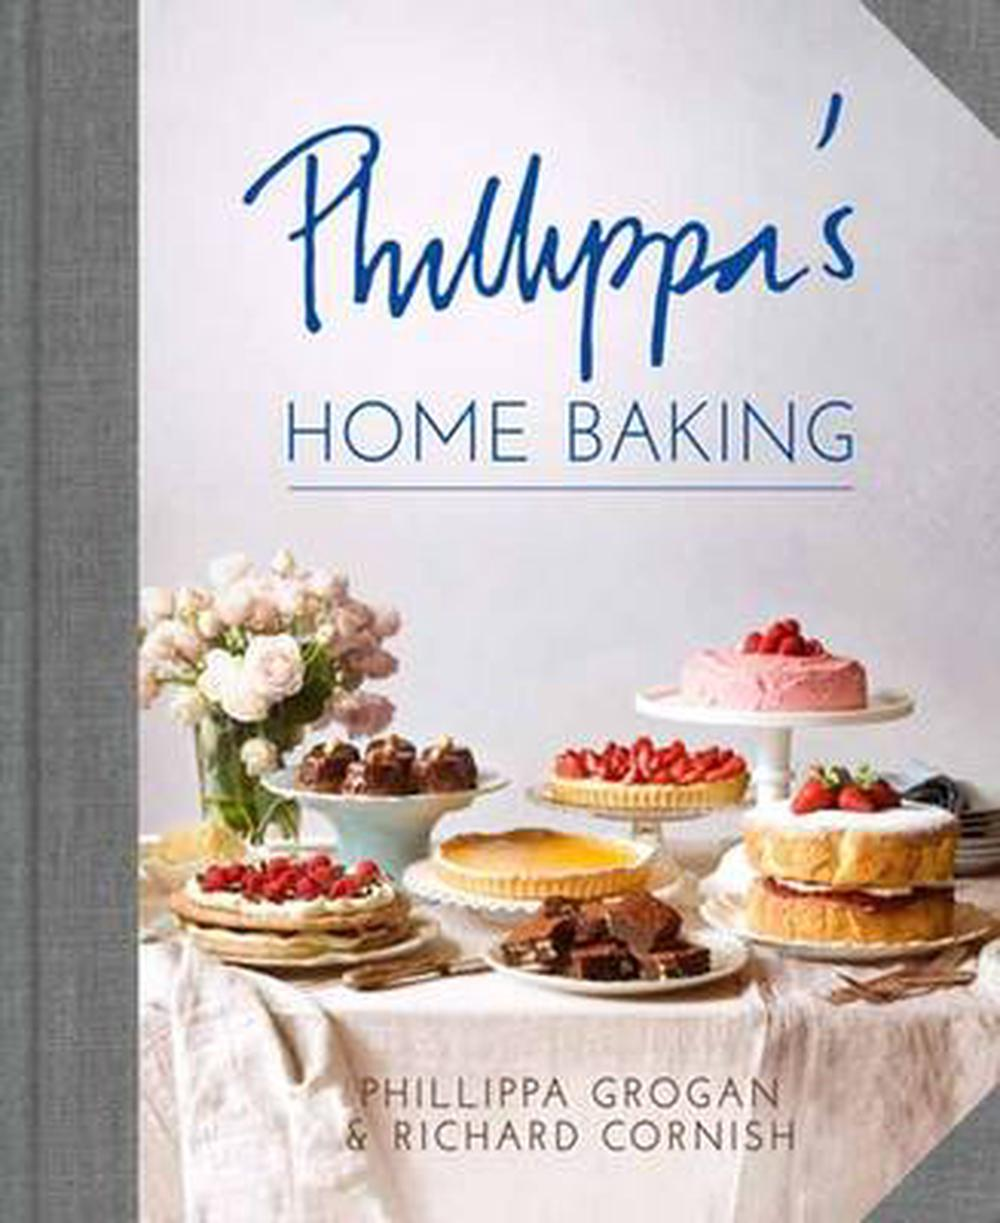 Phillippa's Home Baking